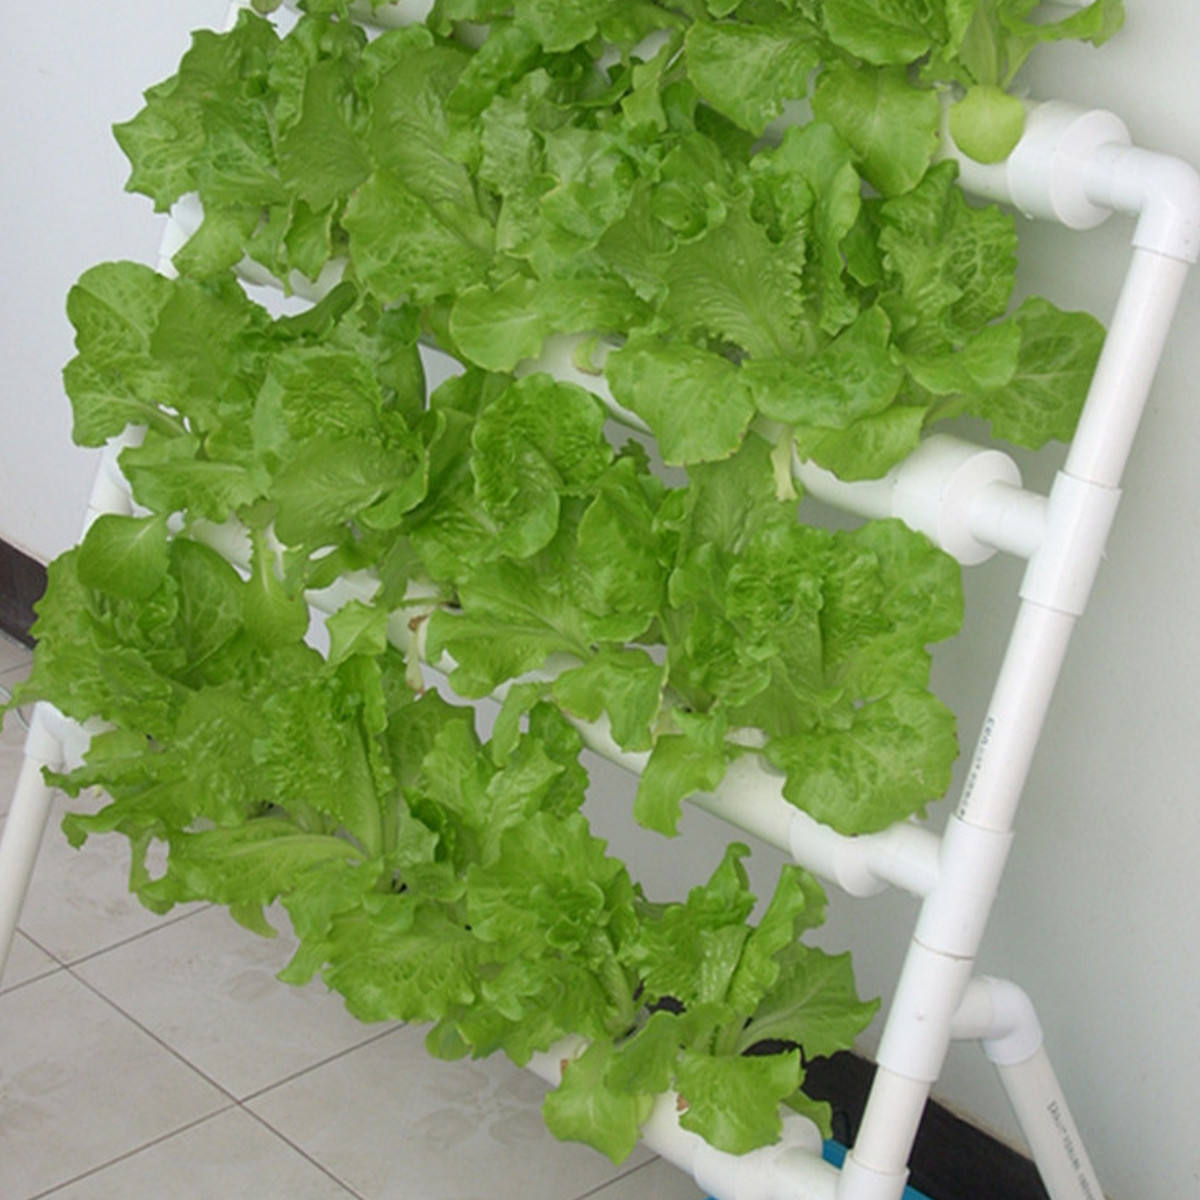 Hydroponics Nft System with 36/108 Holes Kits,Vertical Hydroponic Growing Systems PVC Tube Plant Vegetable